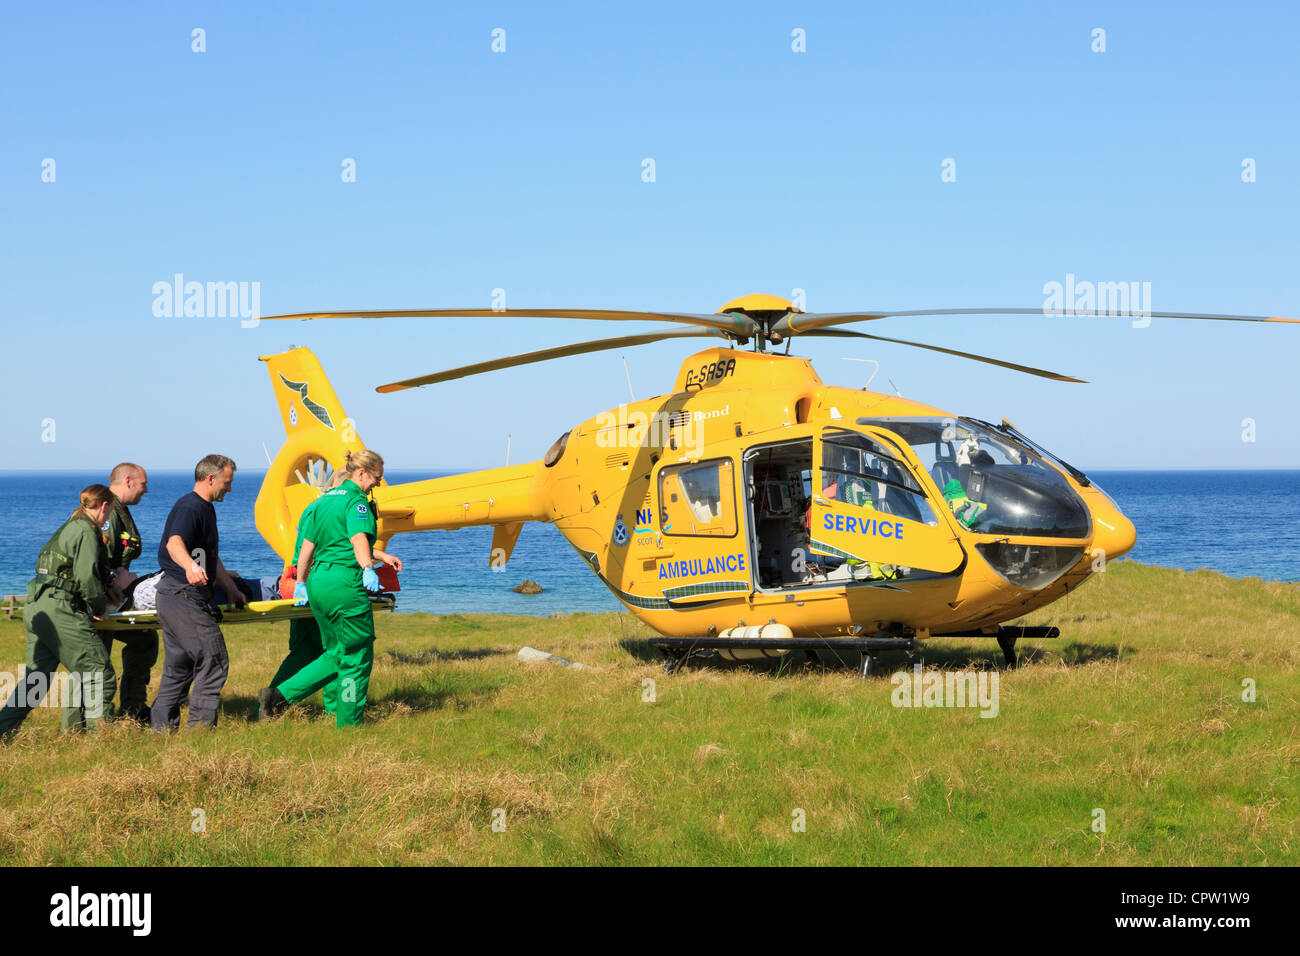 UK Scottish Air Ambulance Service Helicopter paramedics rescuing a woman on a stretcher on the remote North West - Stock Image